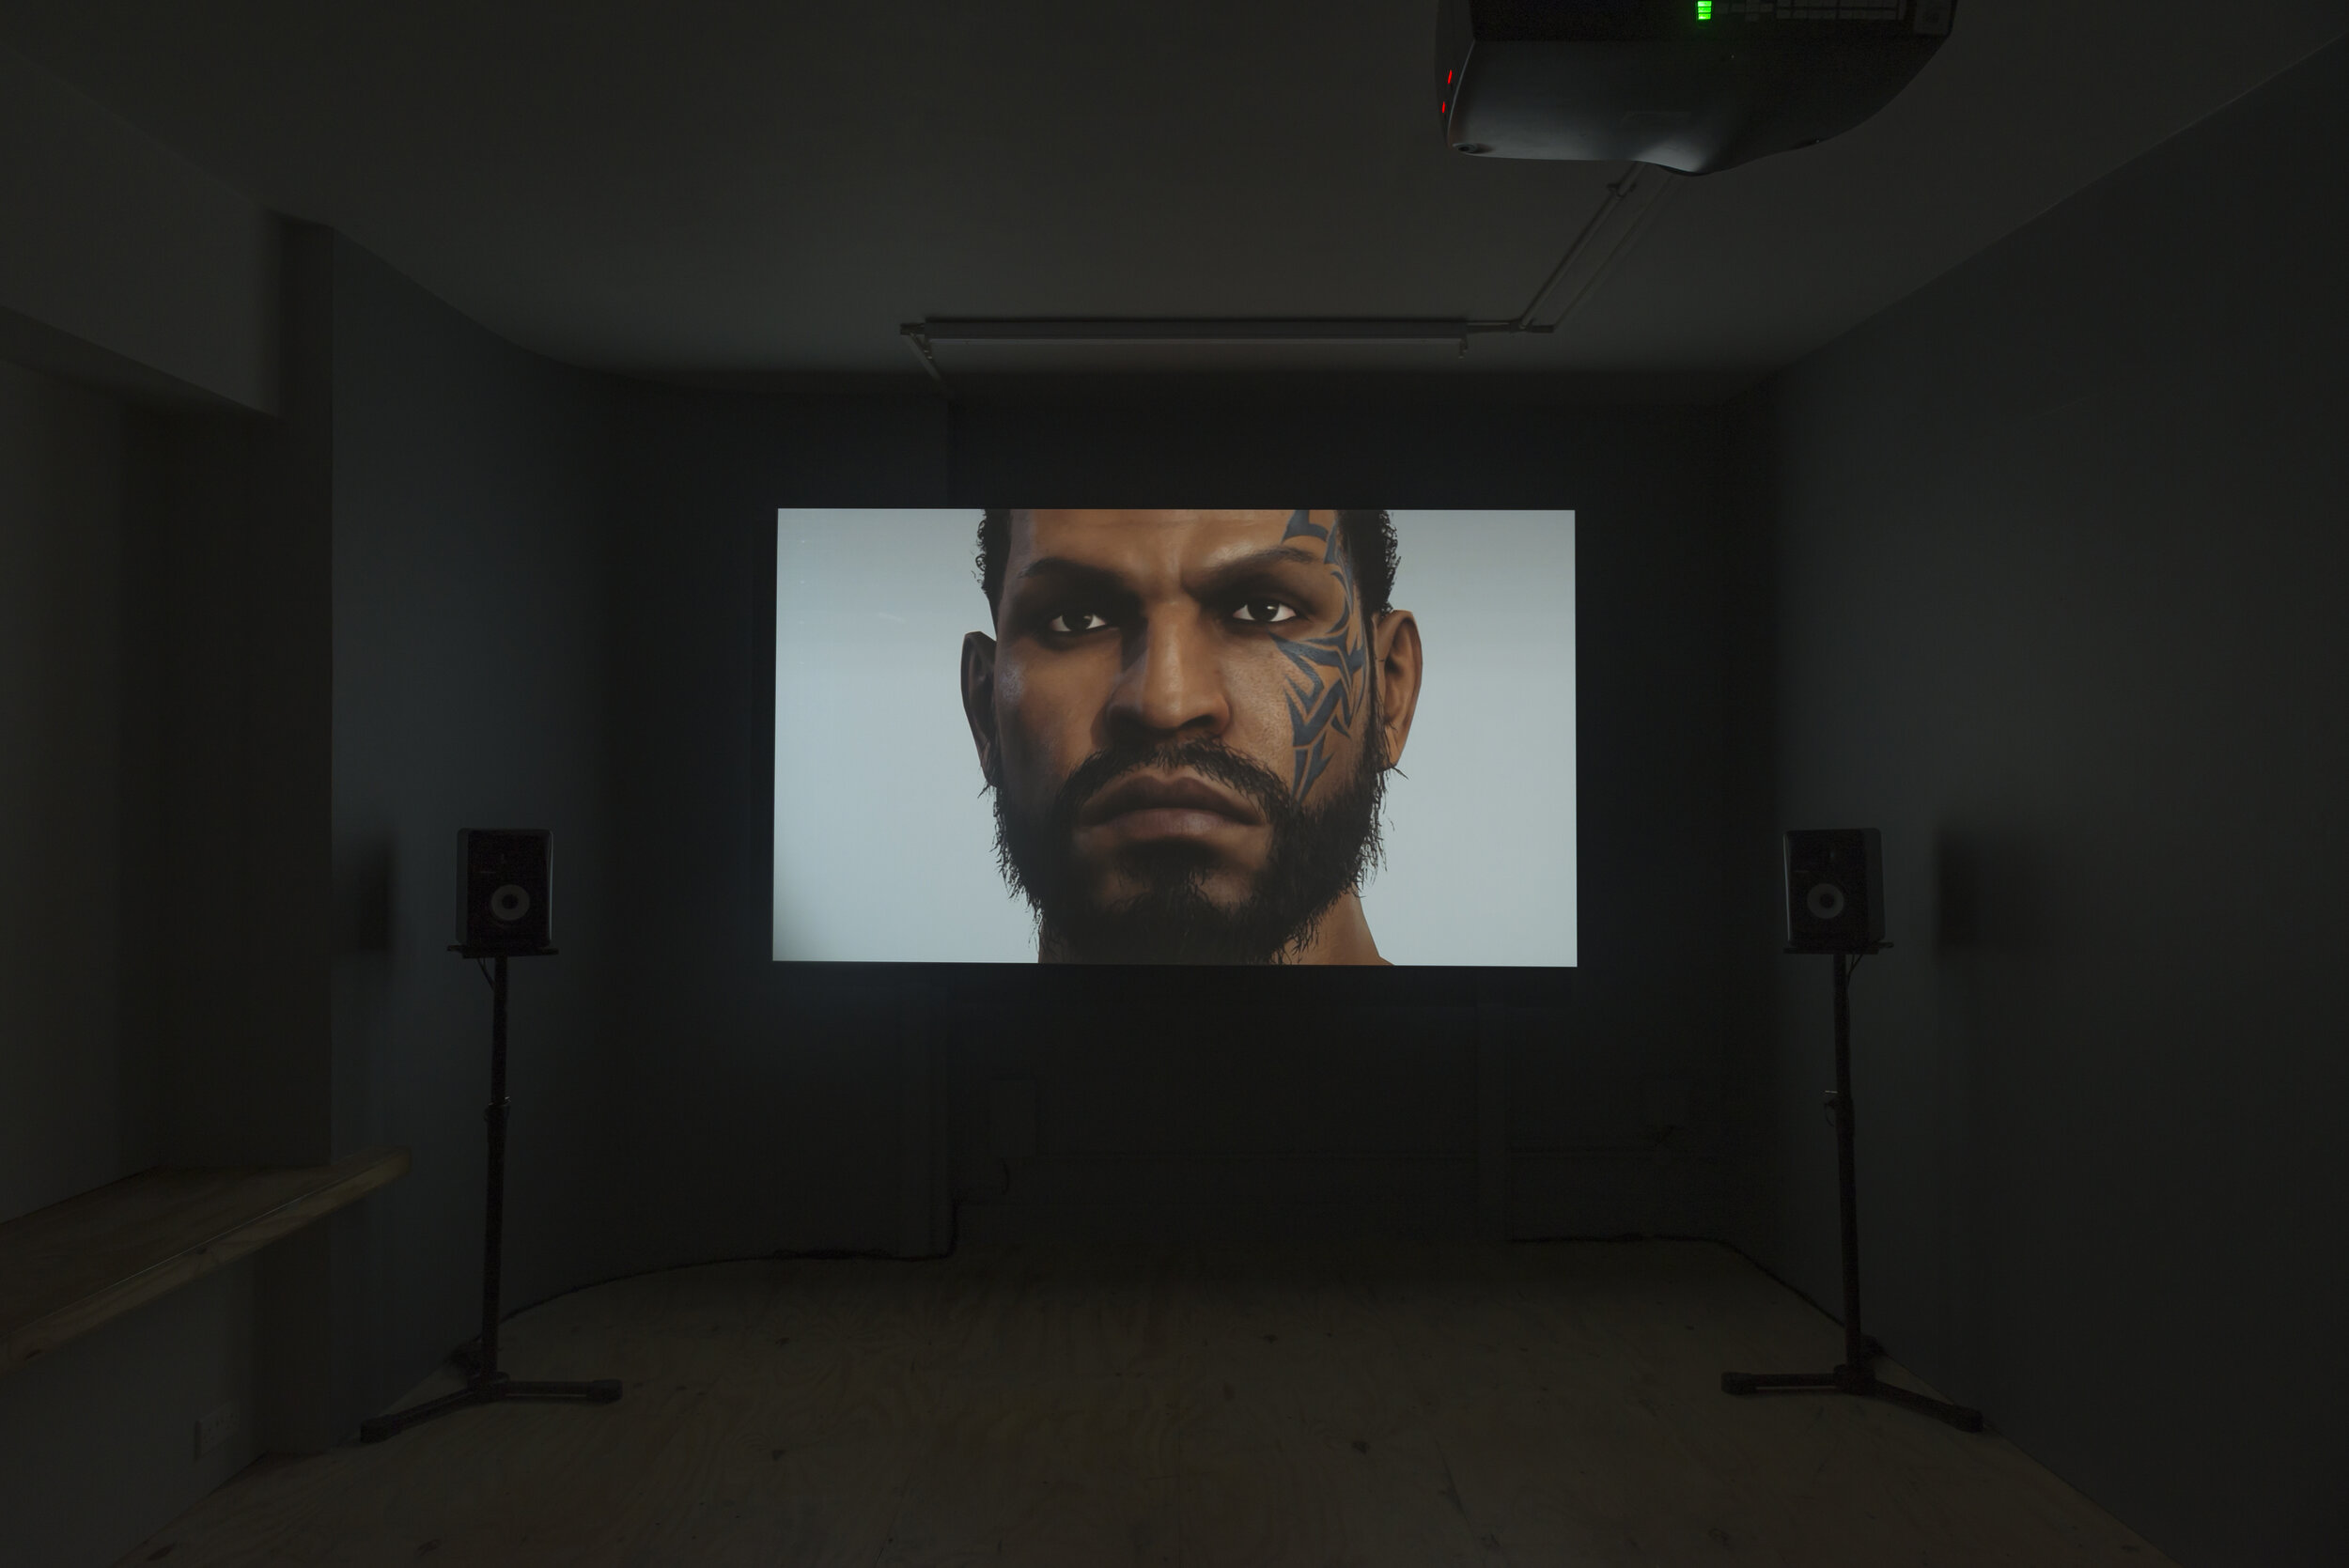 """""""A Terrible Fiction"""", 2019, Larry Achiampong & David Blandy are represented by  Copperfield  &  Seventeen , Image: Installation at Arts Catalyst, London, Courtesy: Arts Catalyst"""